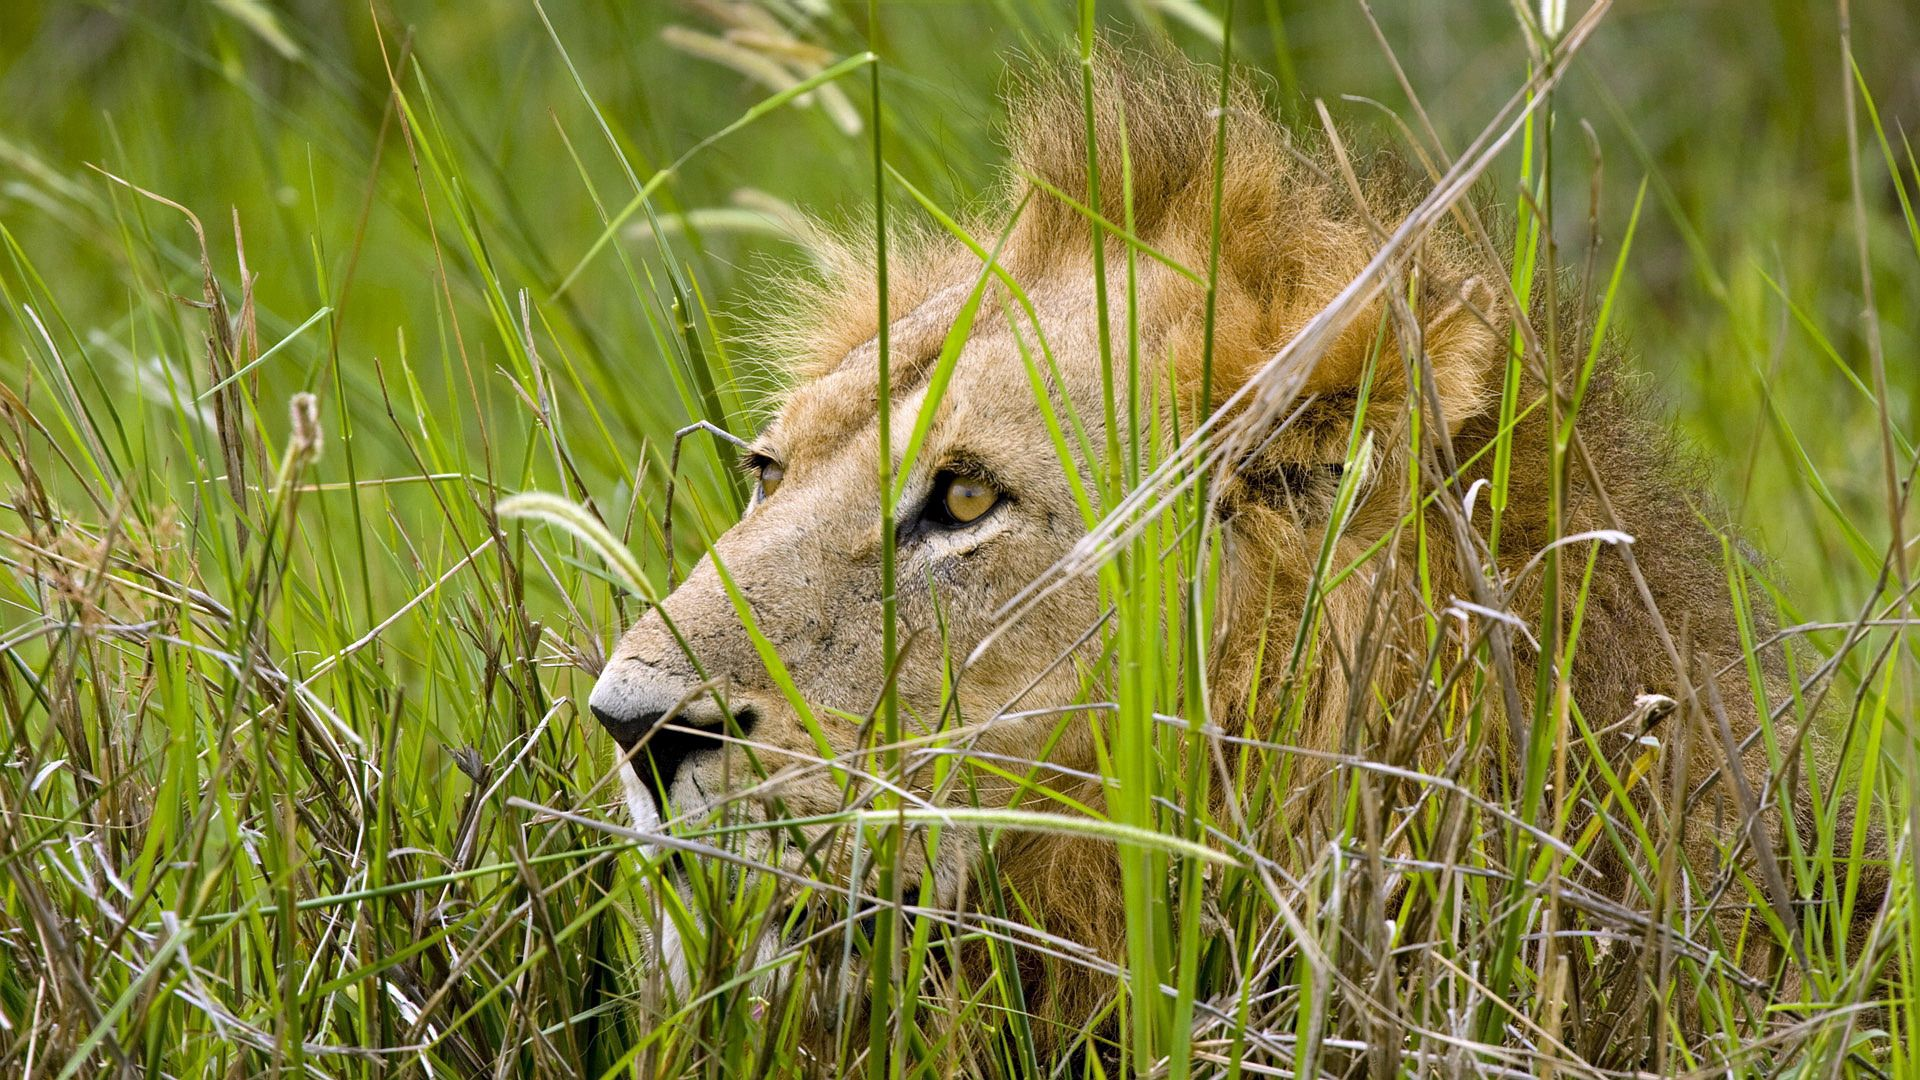 122592 download wallpaper Animals, Lion, Grass, Sit, Hide, Predator screensavers and pictures for free